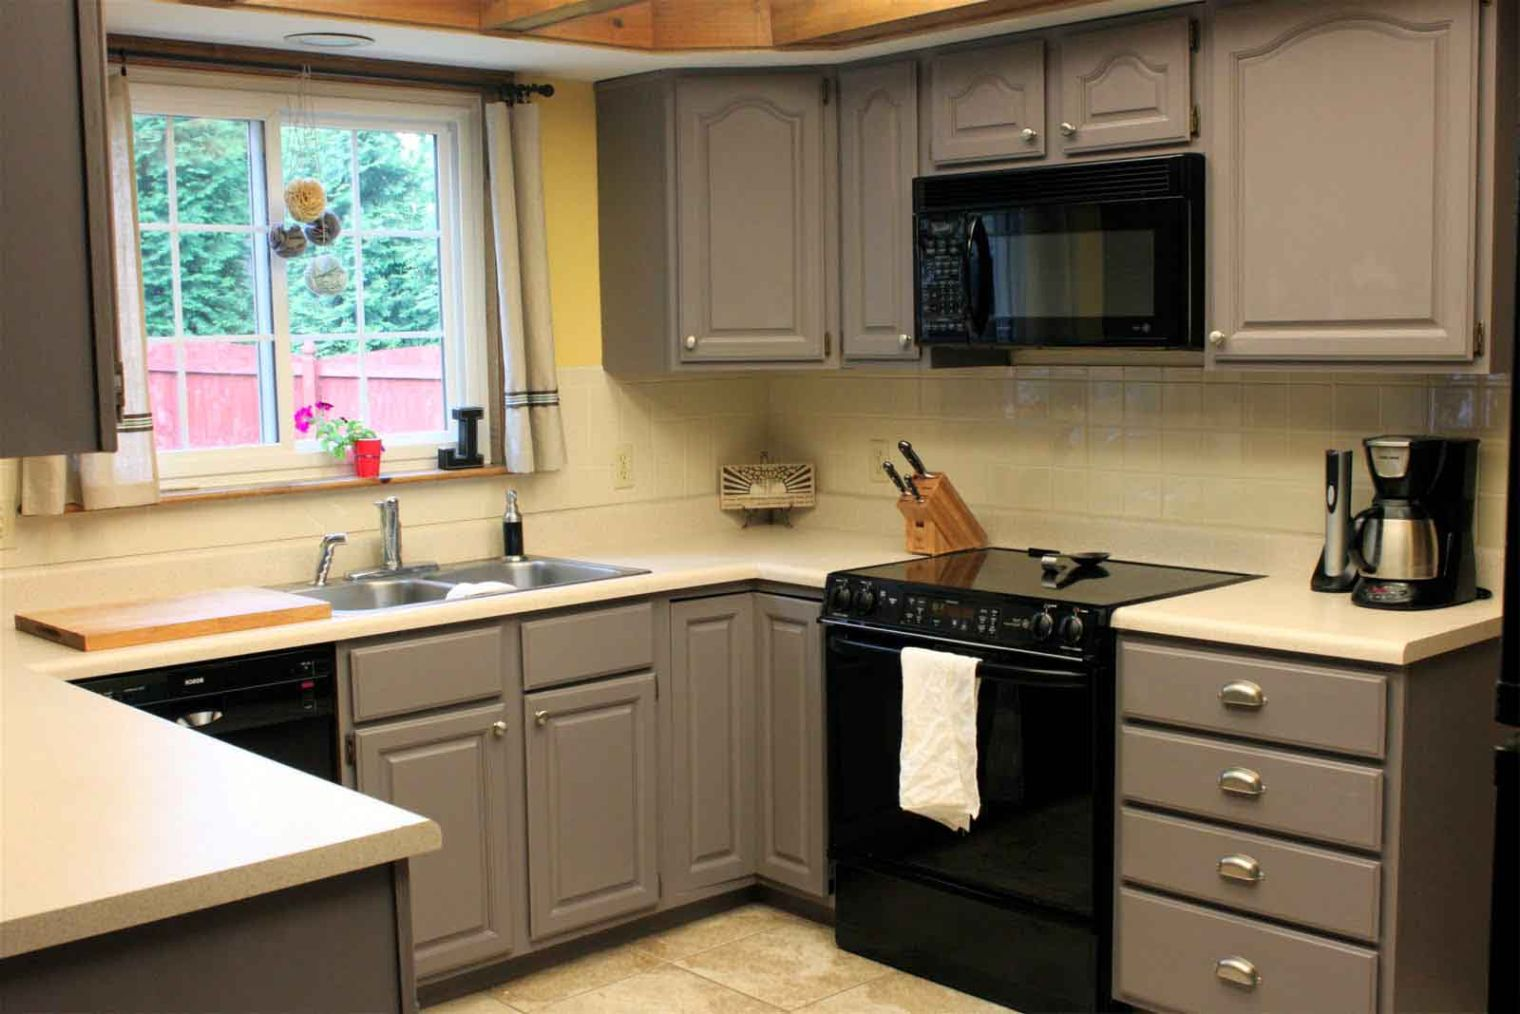 Grey painted kitchen cabinets in small kitchen space for Small kitchen units